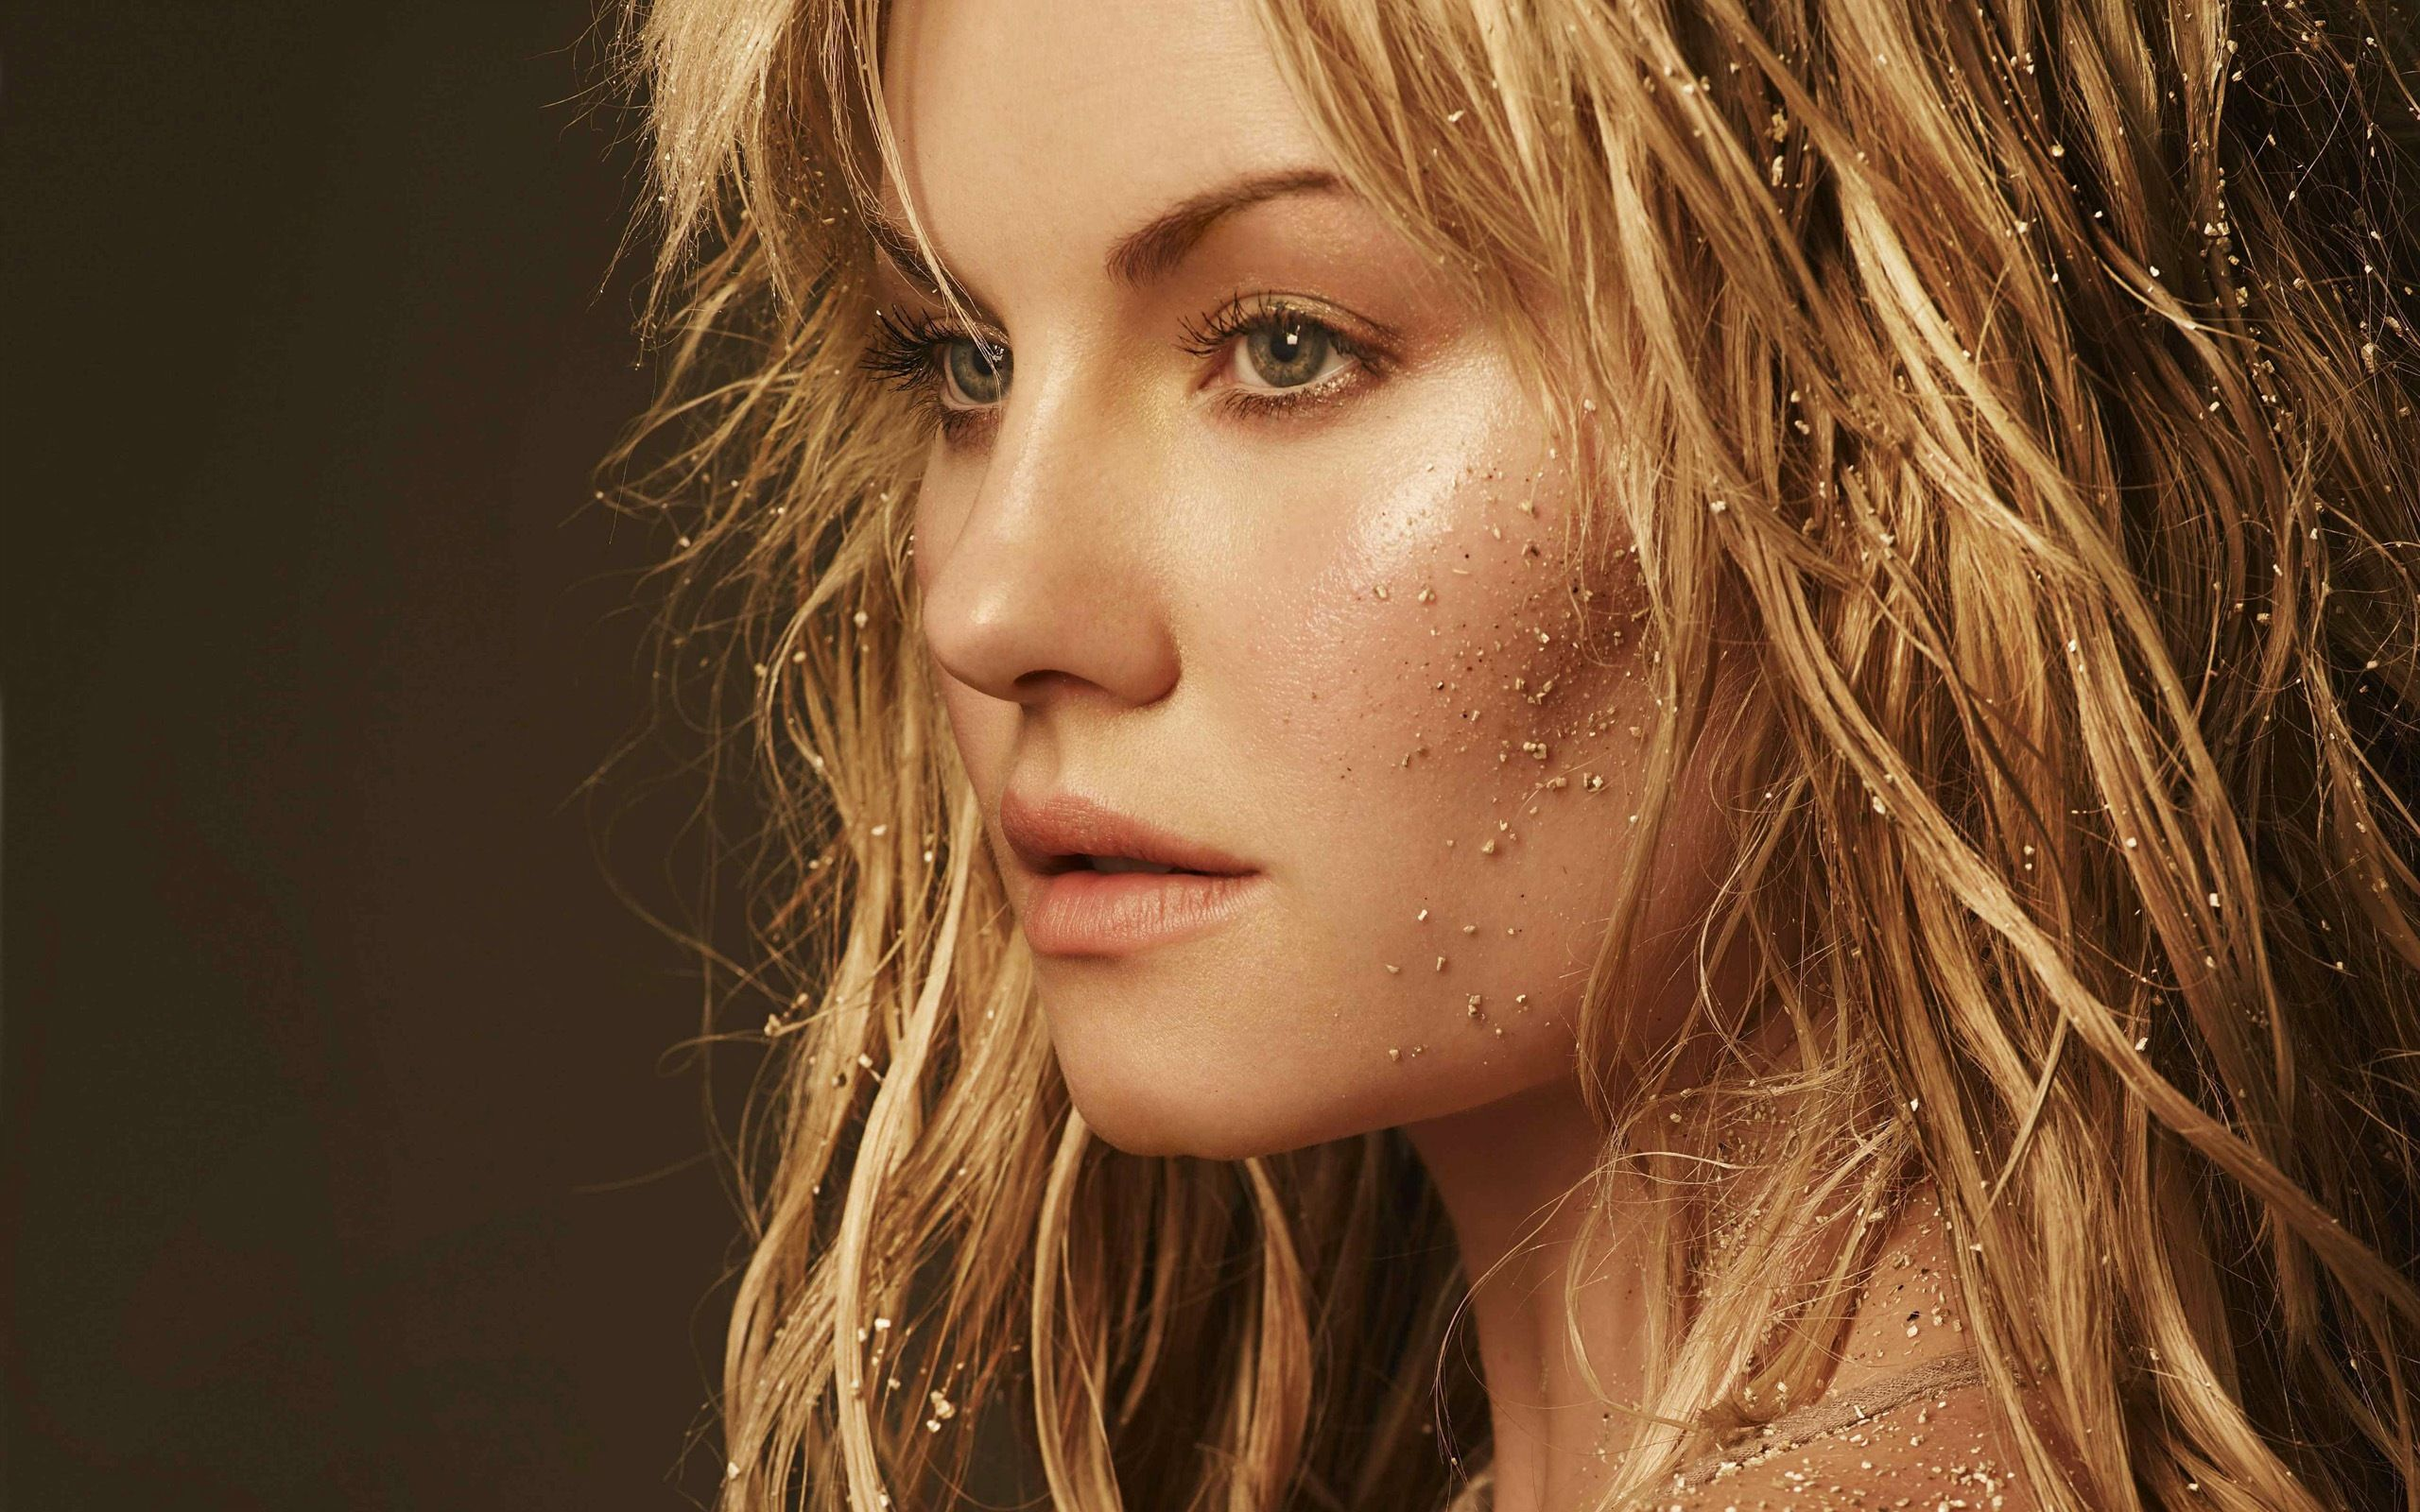 2560x1600 110 Elisha Cuthbert HD Wallpapers   Background Images - Wallpaper Abyss